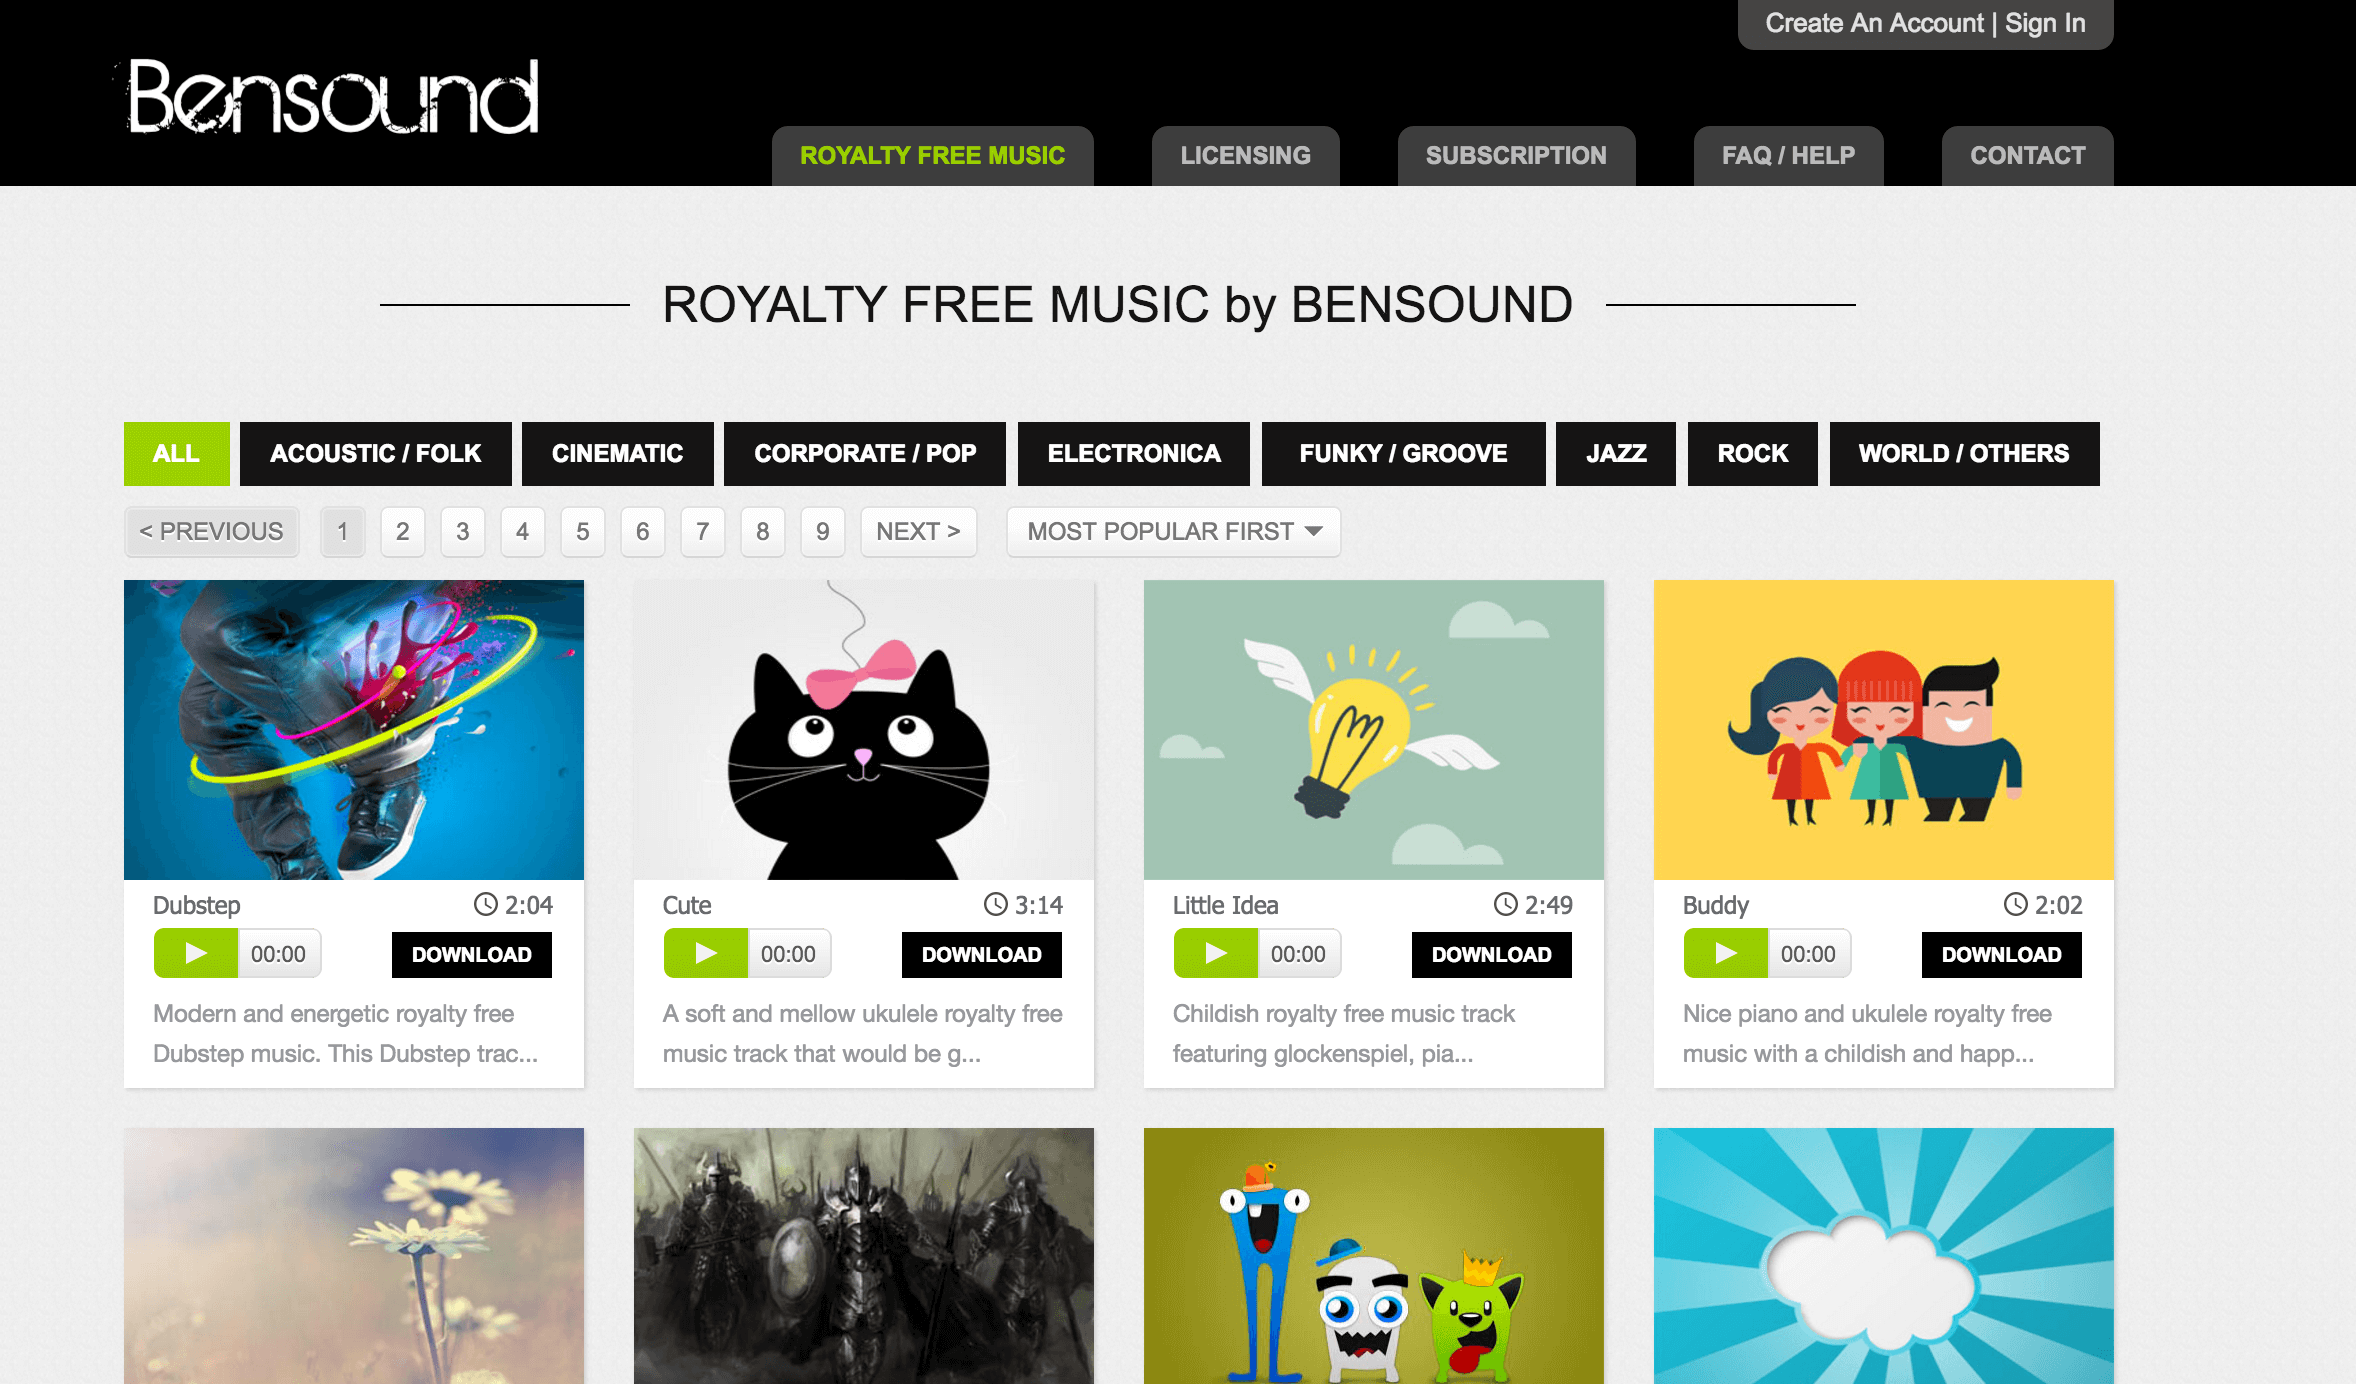 Web Review: Bensound com